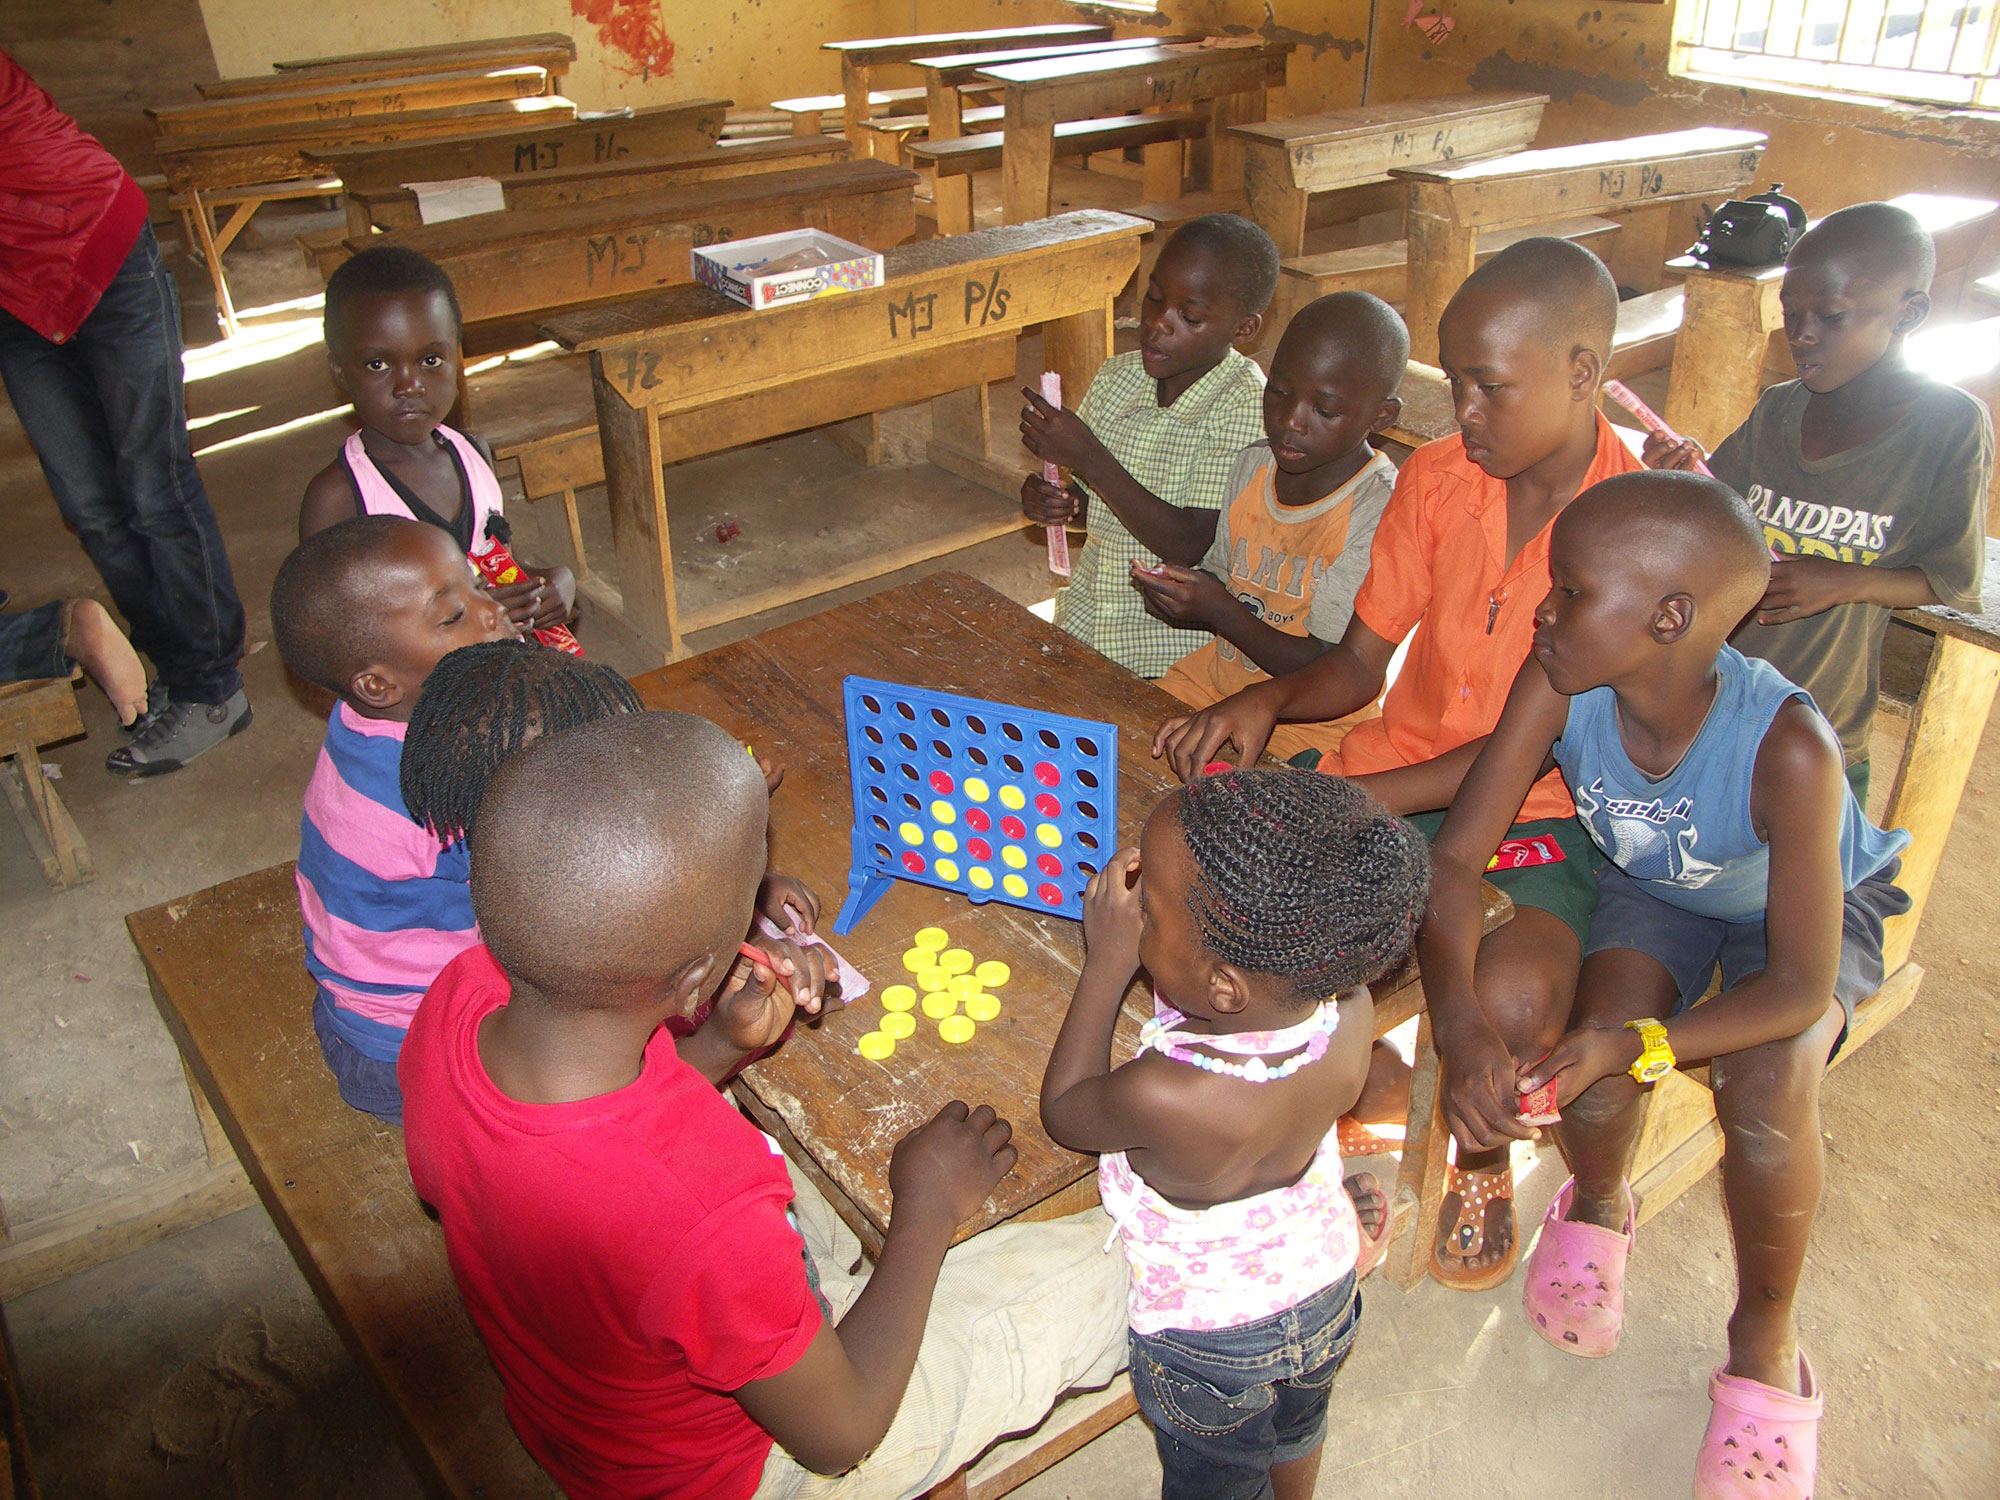 Connect 4 is a hit in Uganda too